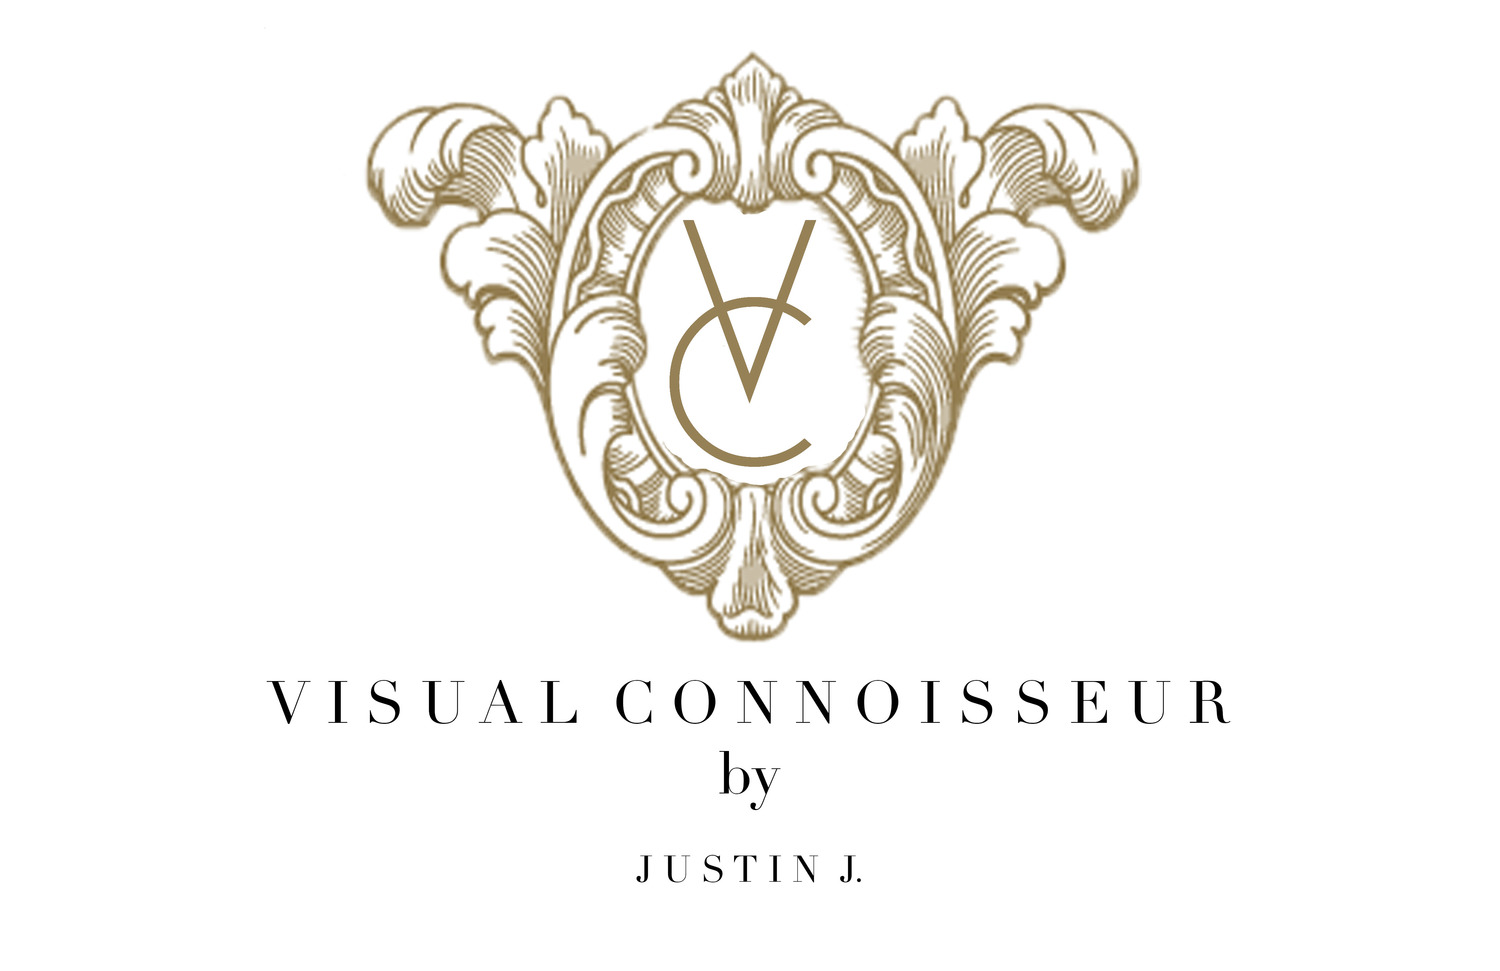 Visual Connoisseur Studios